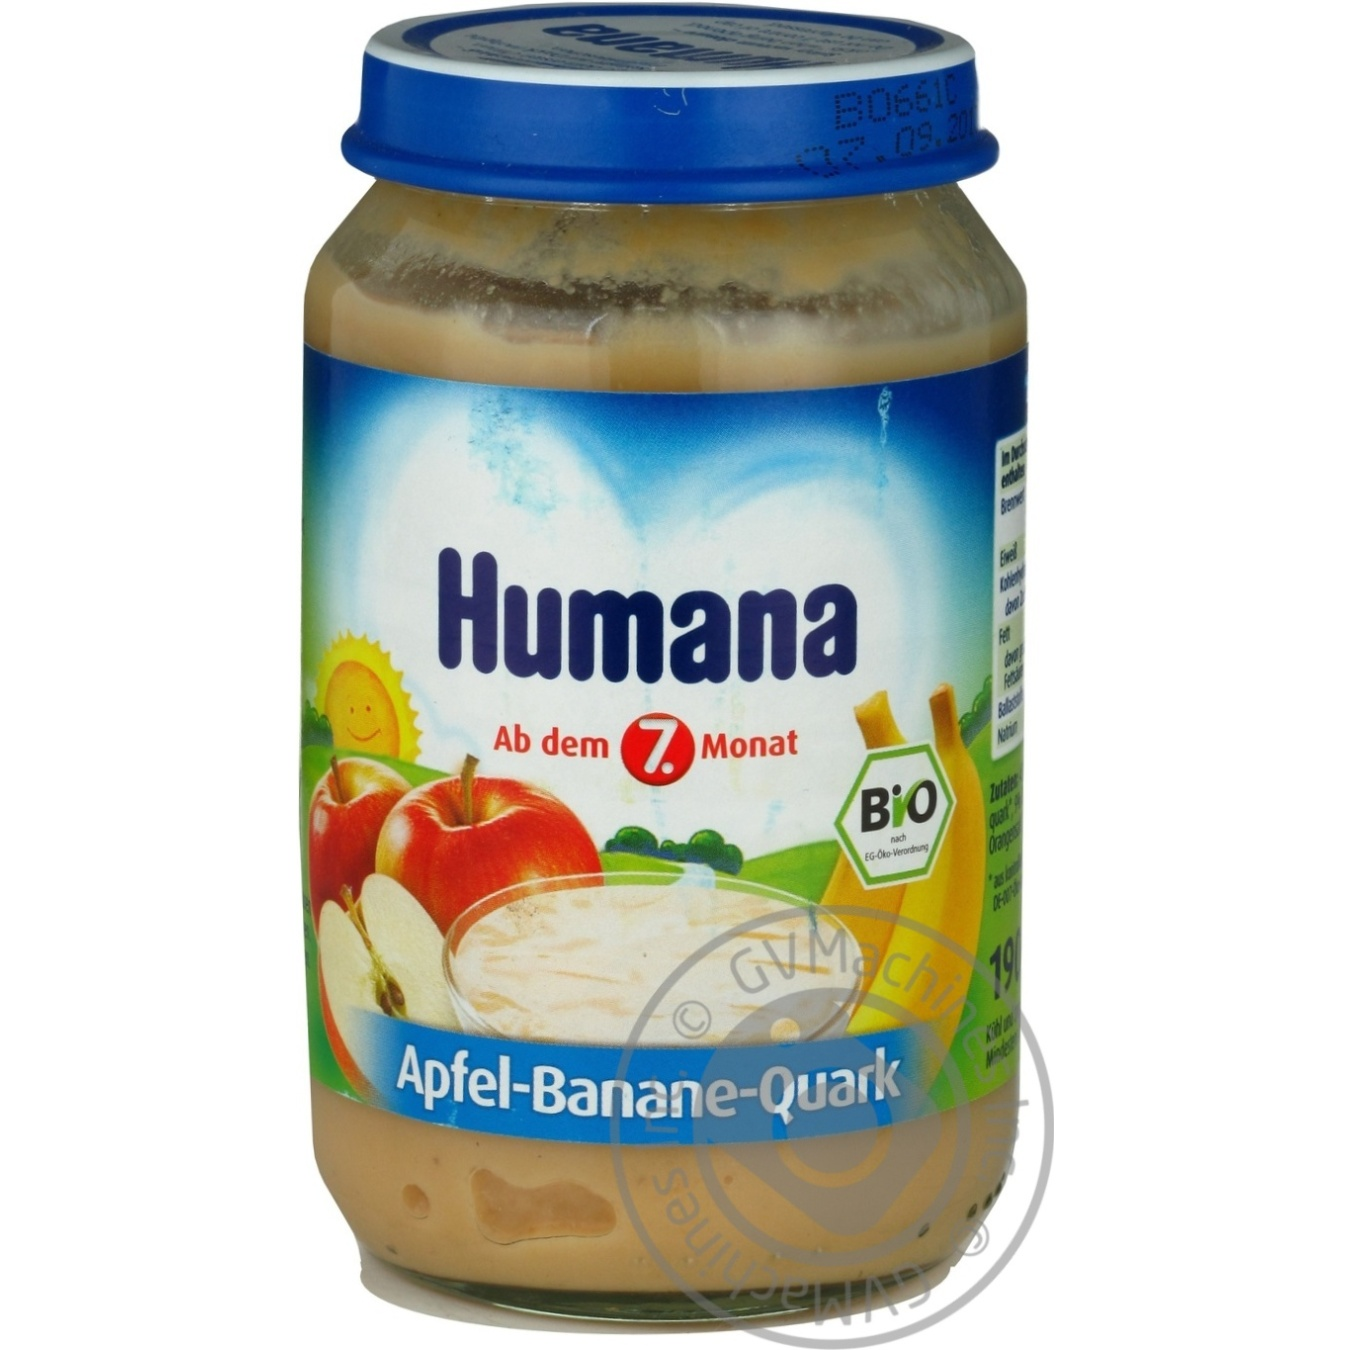 Good Baby Puree Humana Apple Banana With Cottage Cheese For 7+ Month Old Babies  Glass